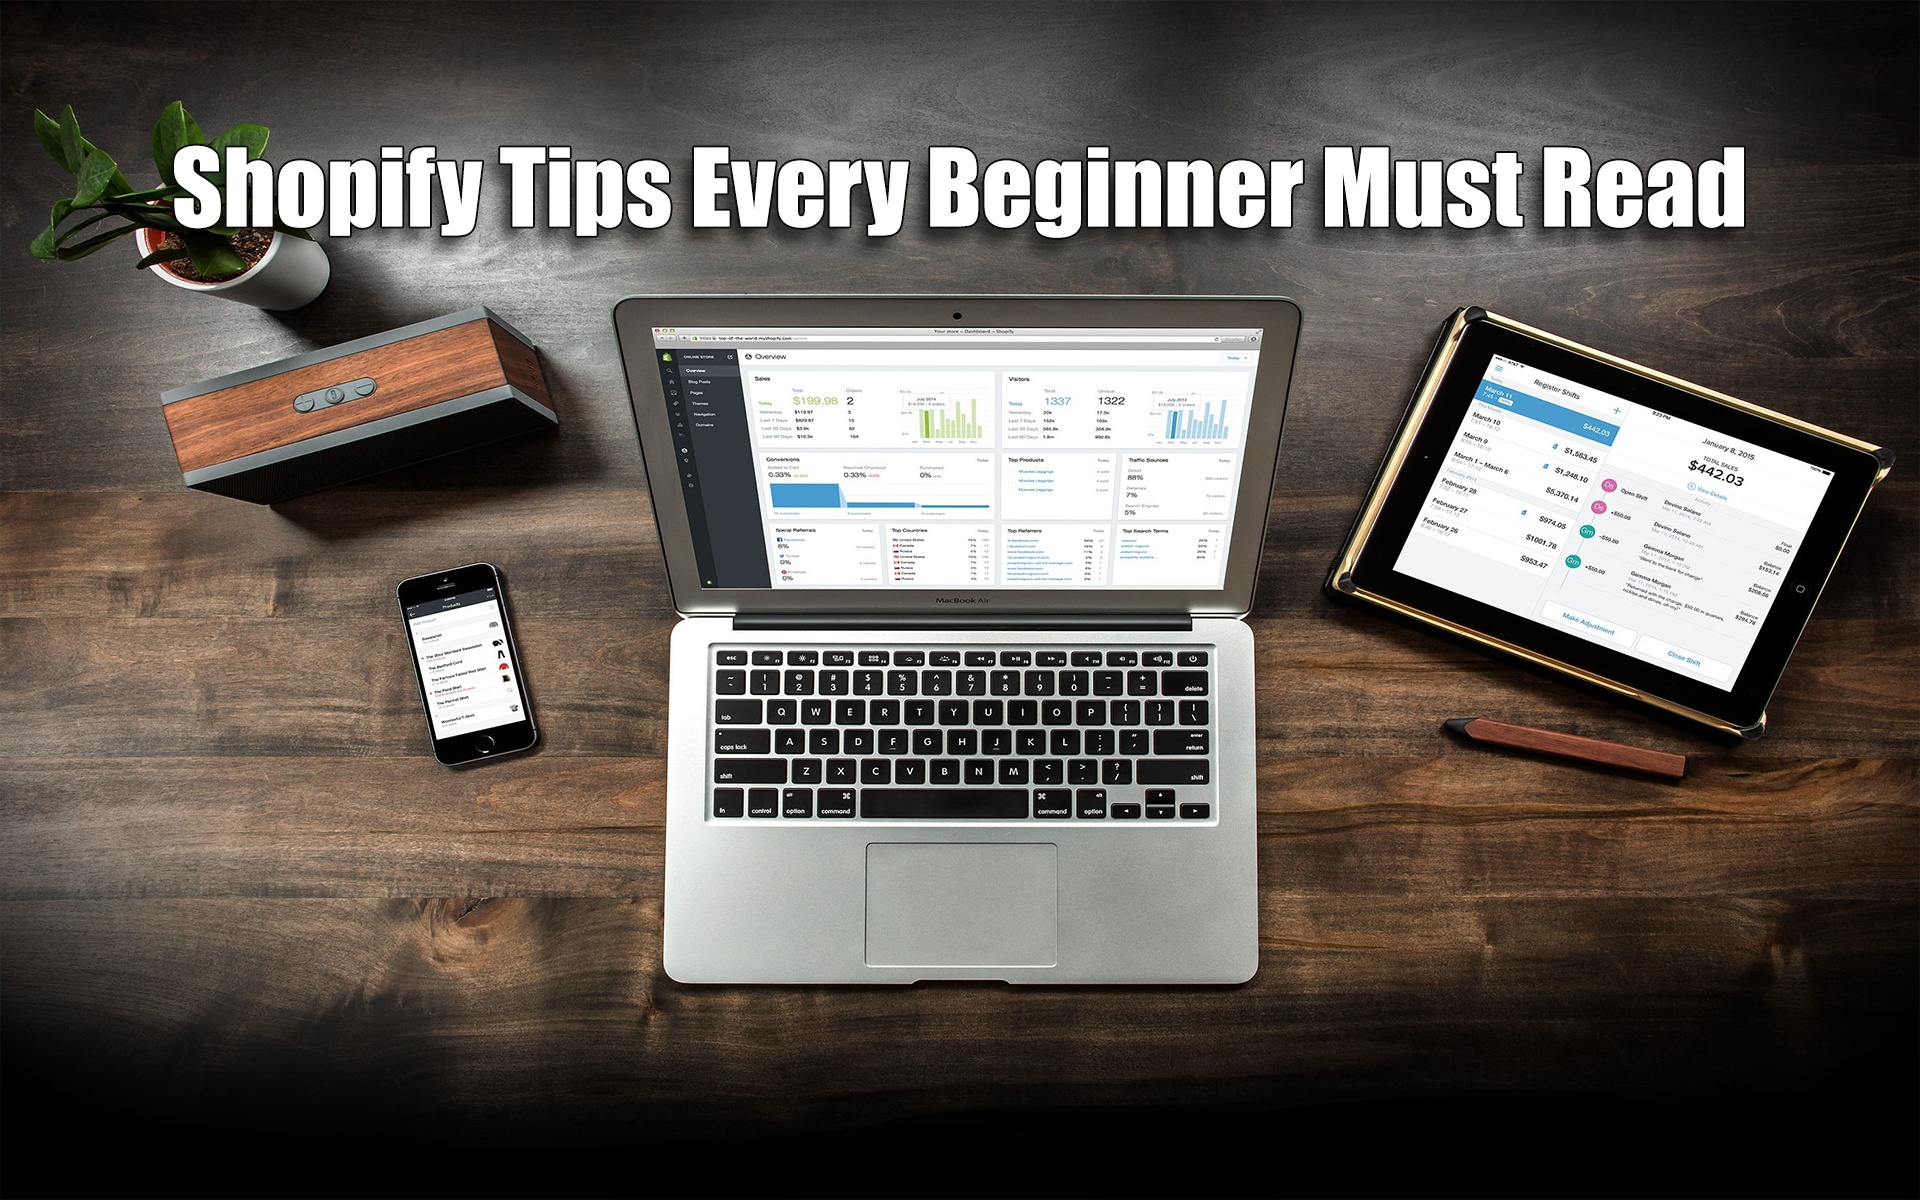 Shopify Tips Every Beginner Must Read